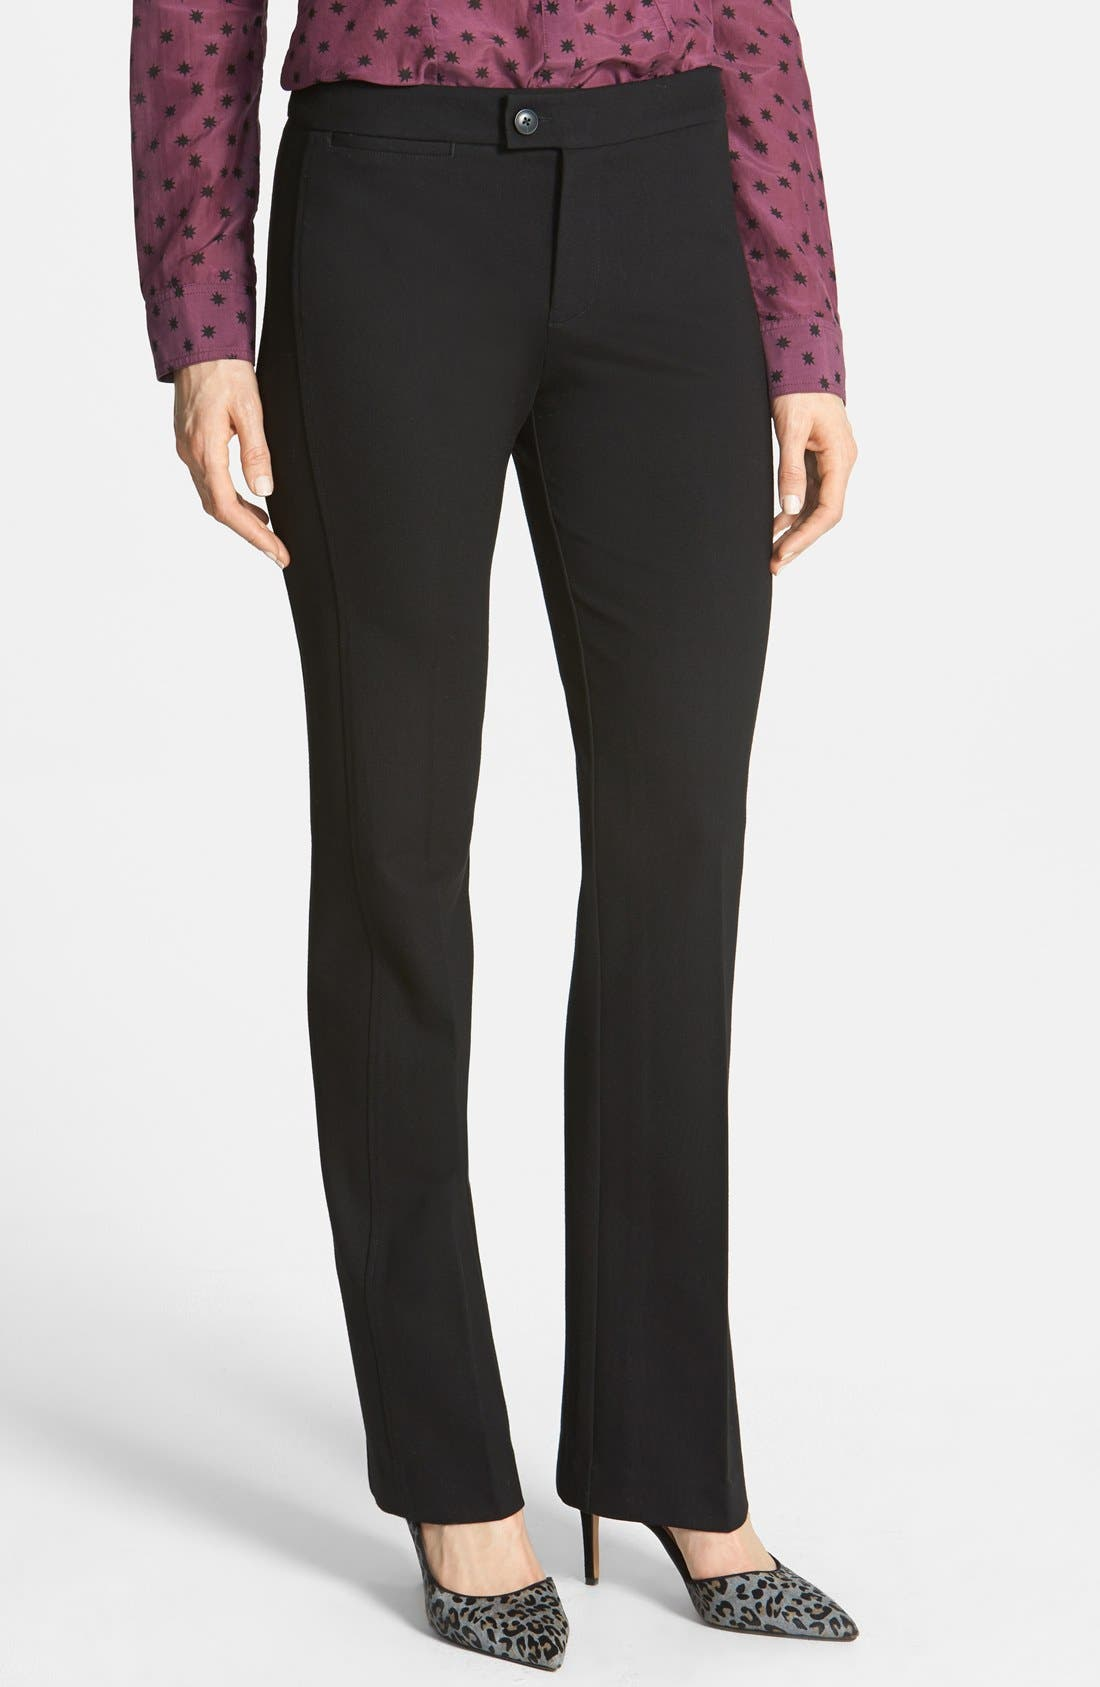 Main Image - NYDJ Stretch Ponte Knit Trousers (Petite)